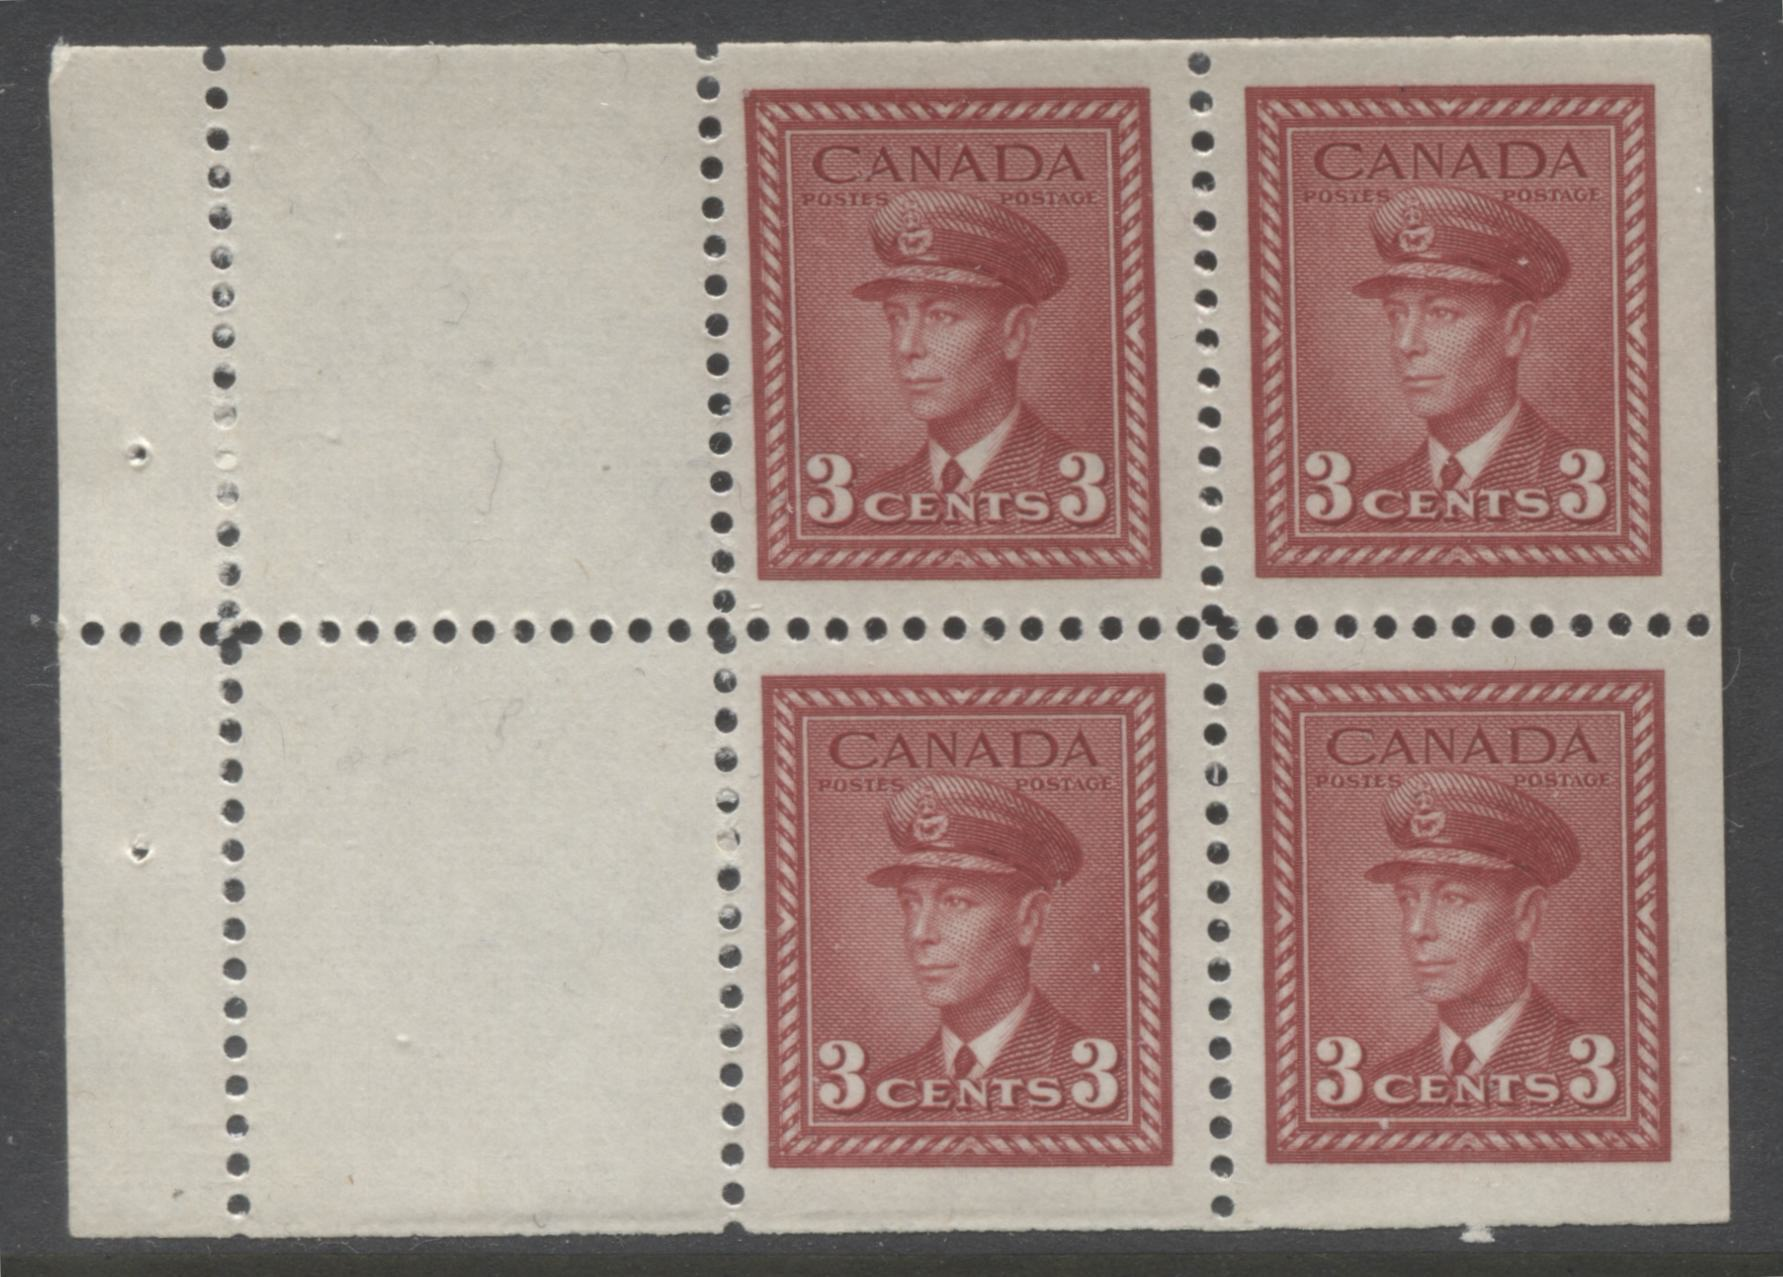 Canada #251a 3c Carmine Red King George VI, 1942-1949 War Issue, A Very Fine Mint NH Example of the Booklet Pane of 4 + 2 Labels Brixton Chrome